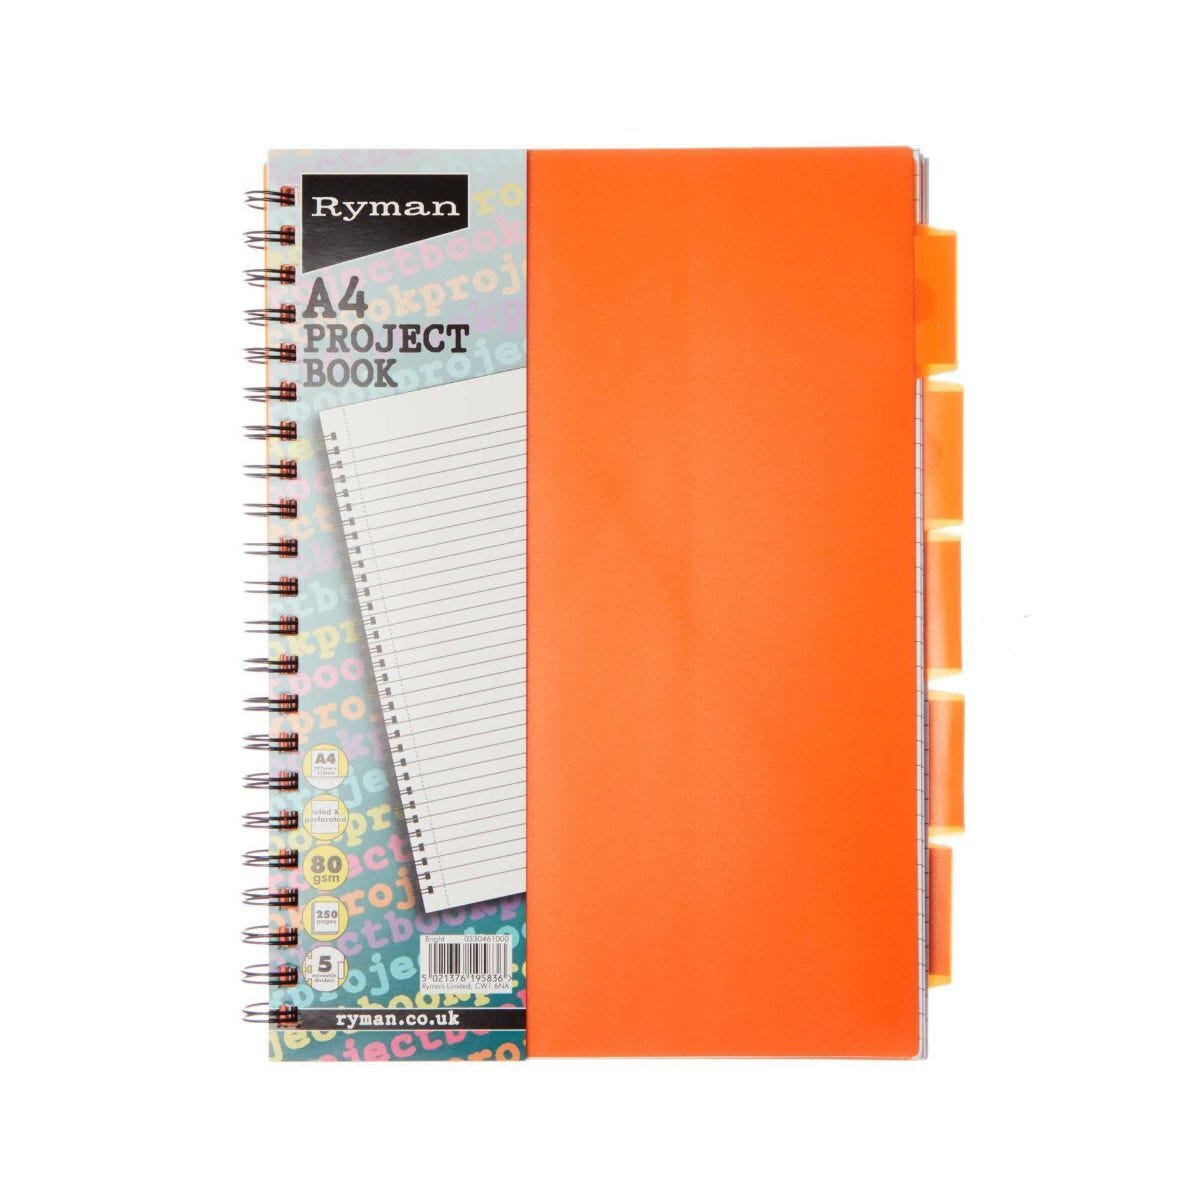 Ryman Project Book A4 5 Dividers Pack of 3 Pink